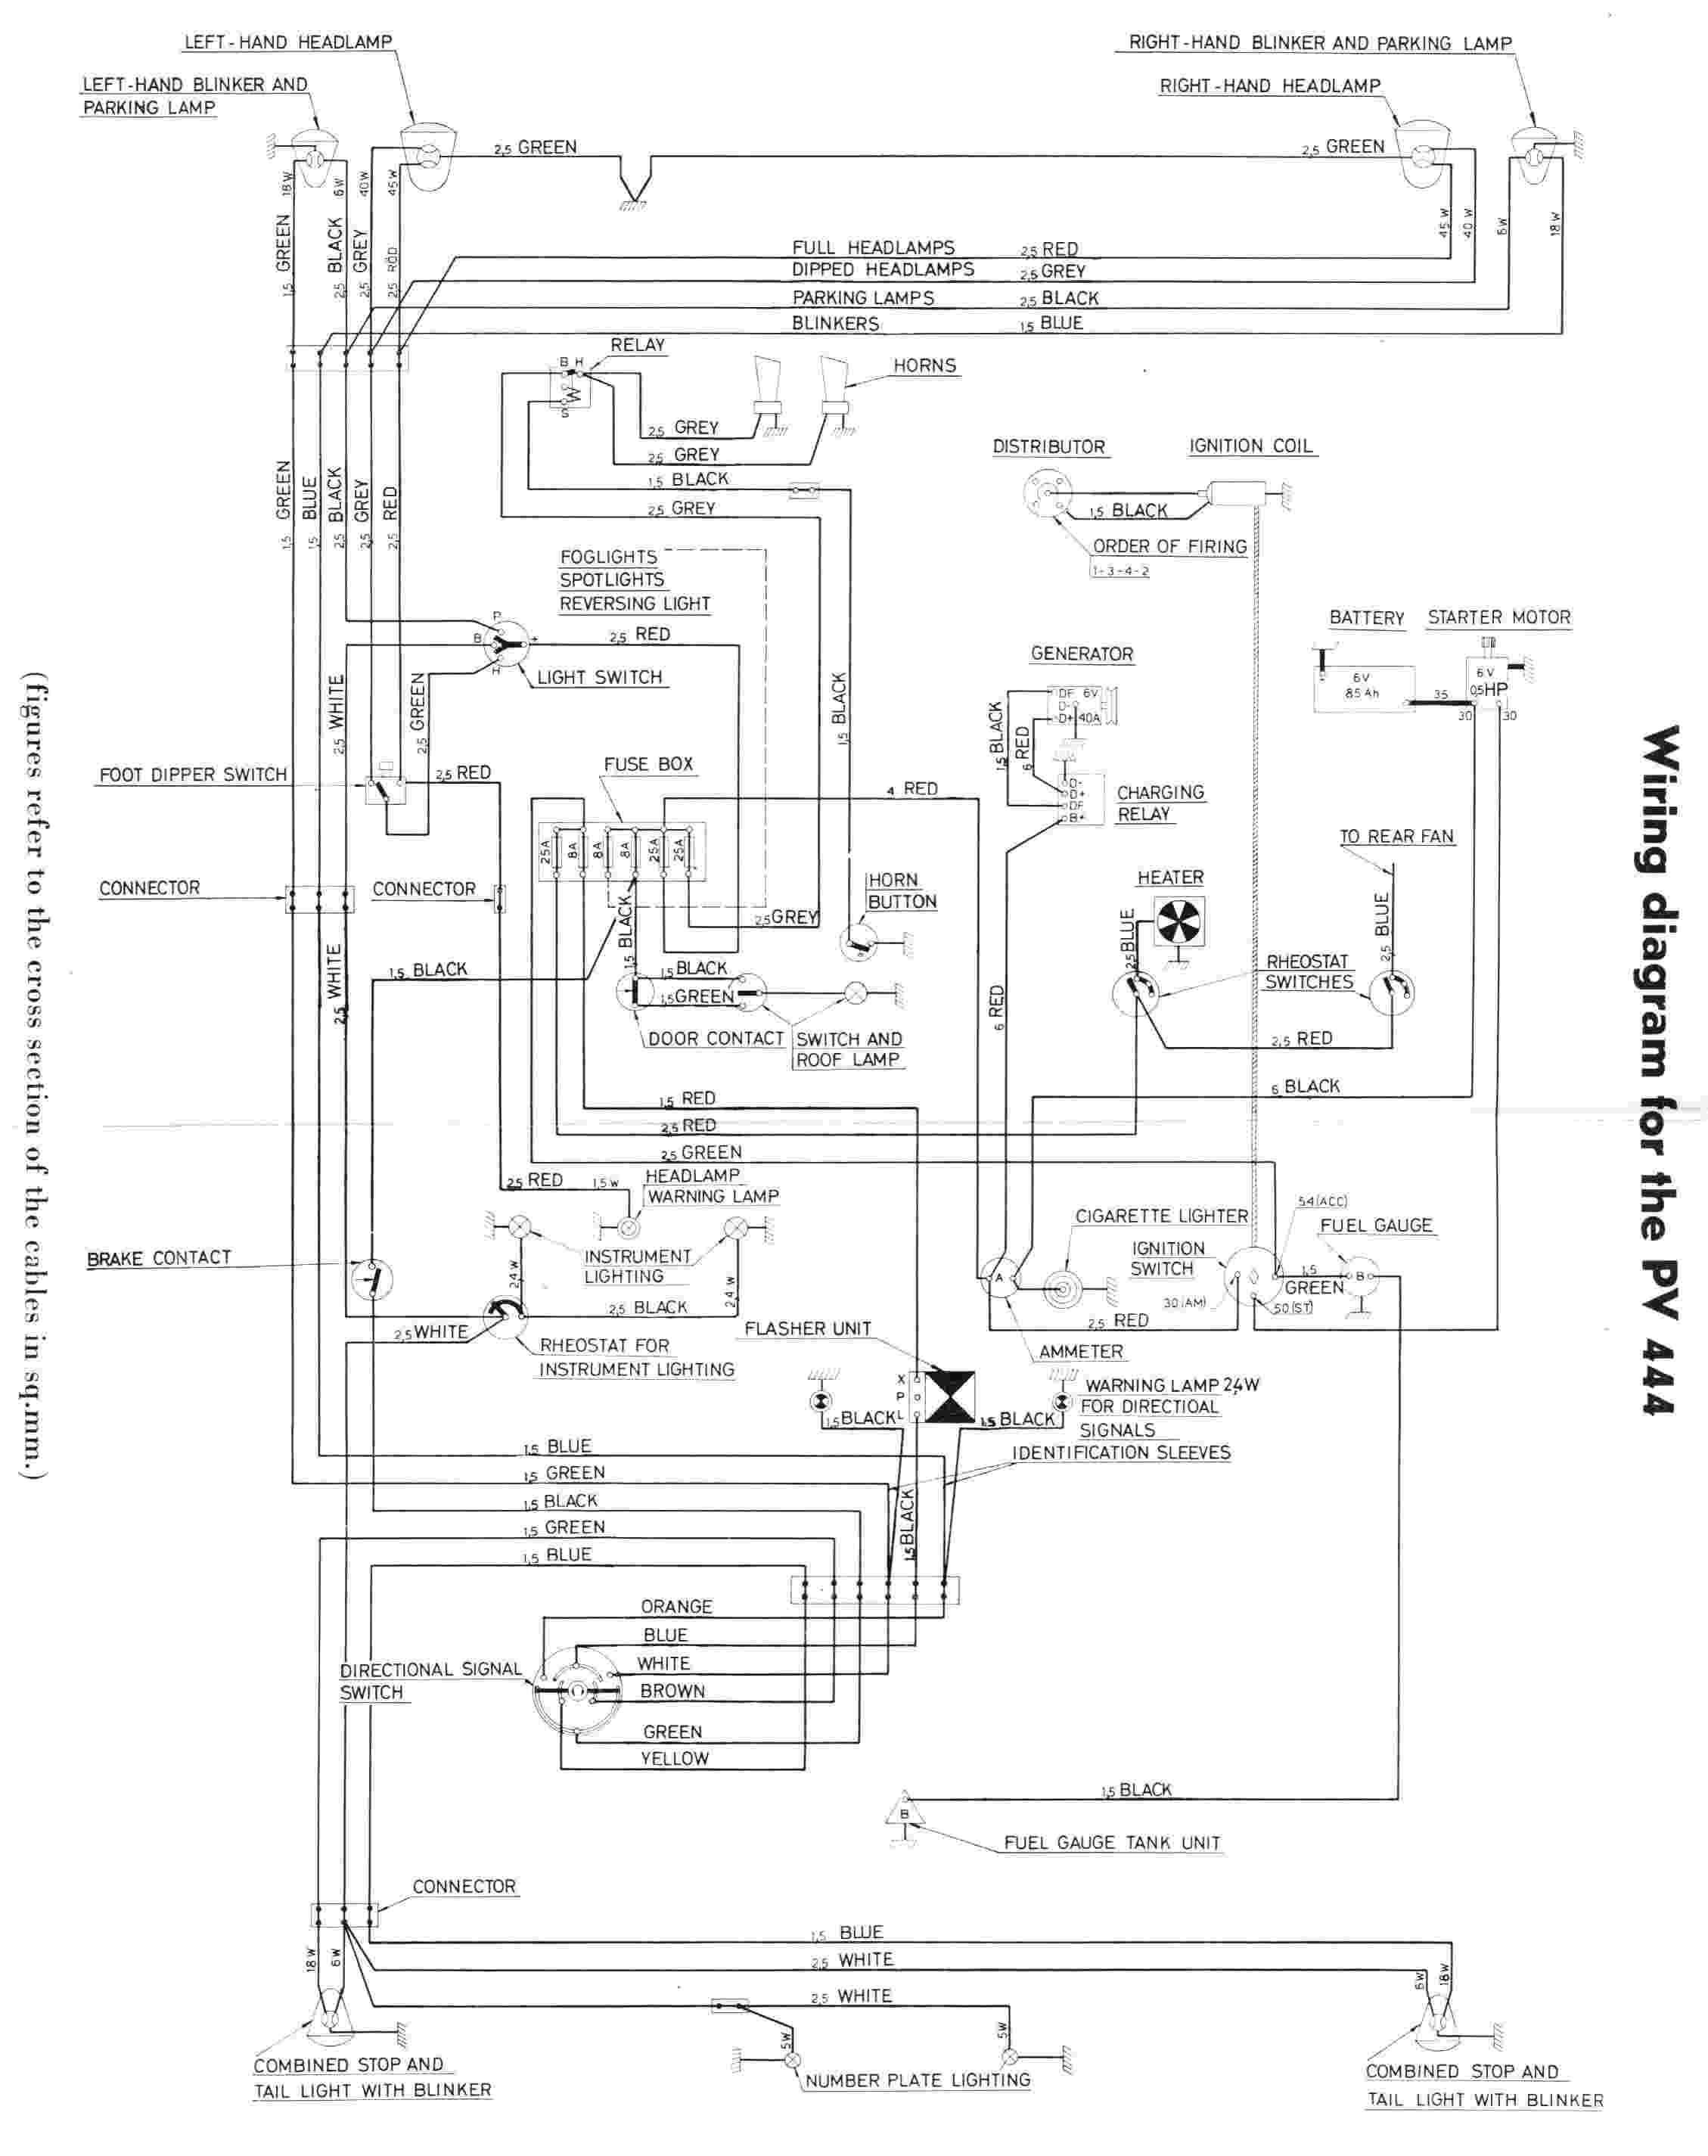 electrical wiring diagram of volvo pv444 volvo vn air horn wiring diagram air horn solenoid, air horn volvo vnl truck wiring diagrams at edmiracle.co